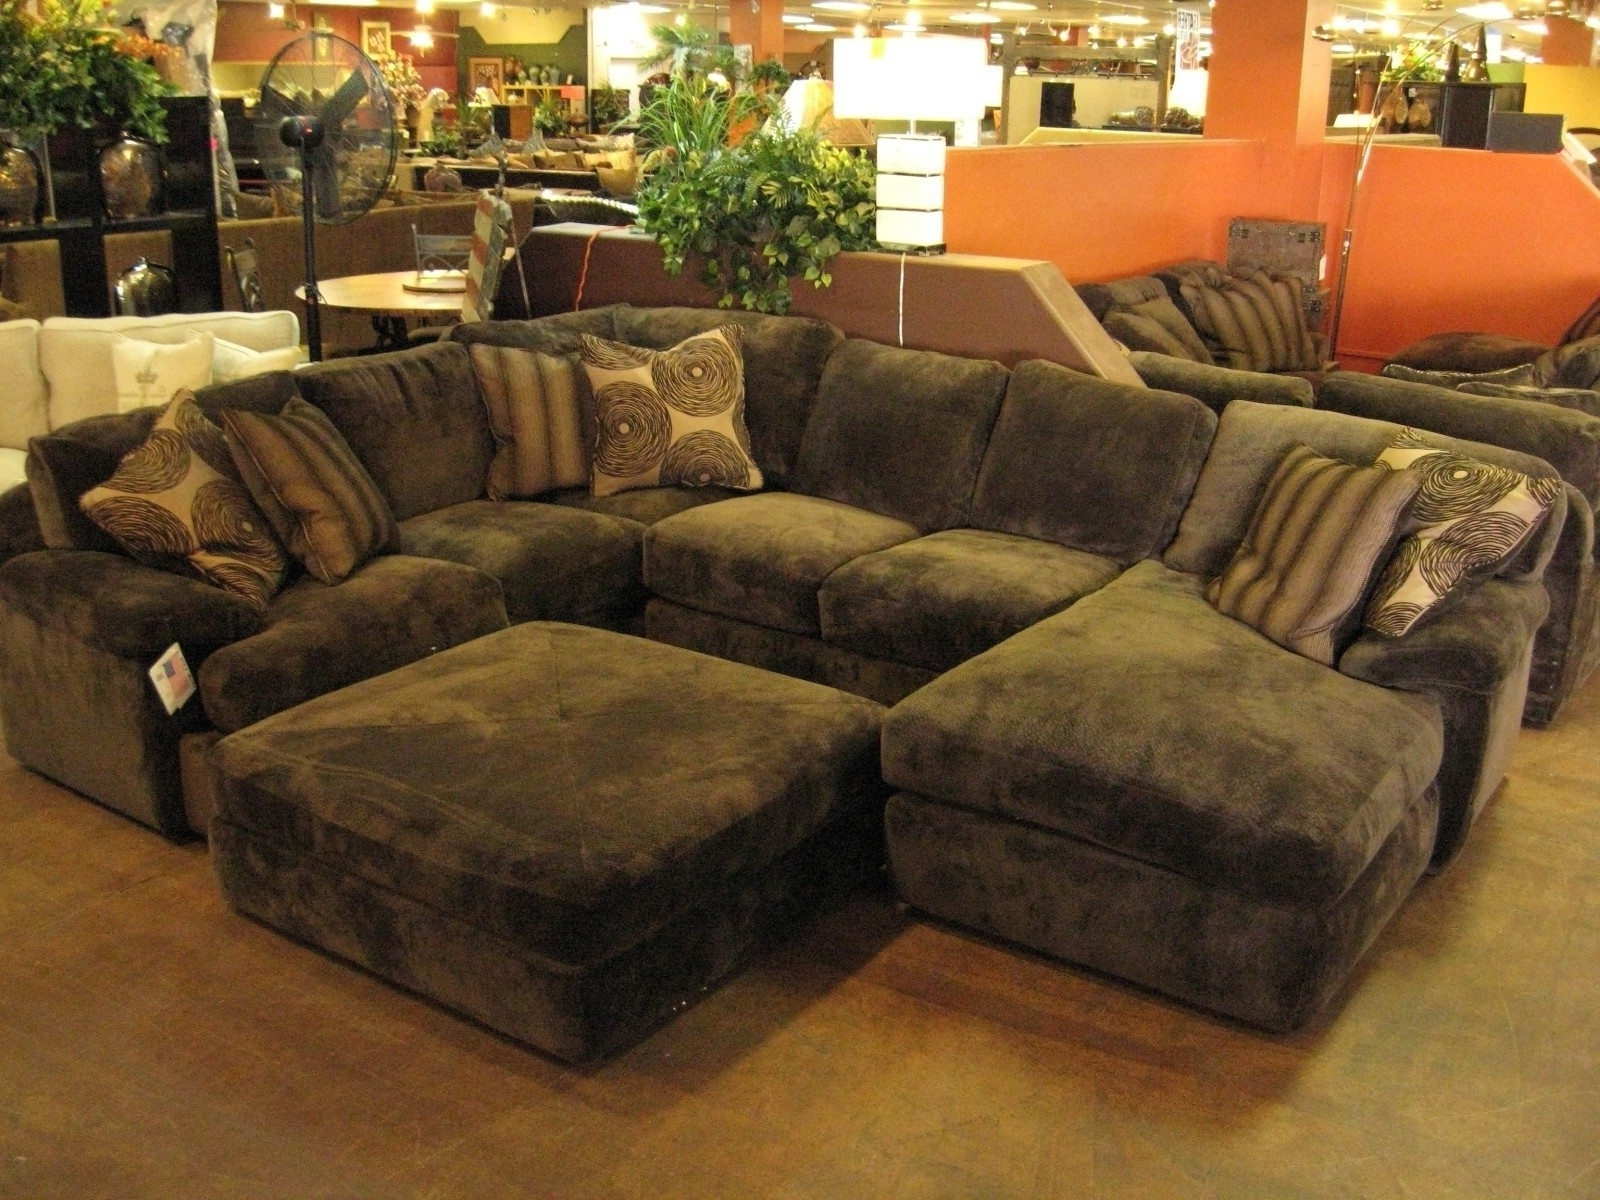 Widely Used Sectionals With Oversized Ottoman Inside Stylish Sectional Sofa With Oversized Ottoman – Mediasupload (View 2 of 15)